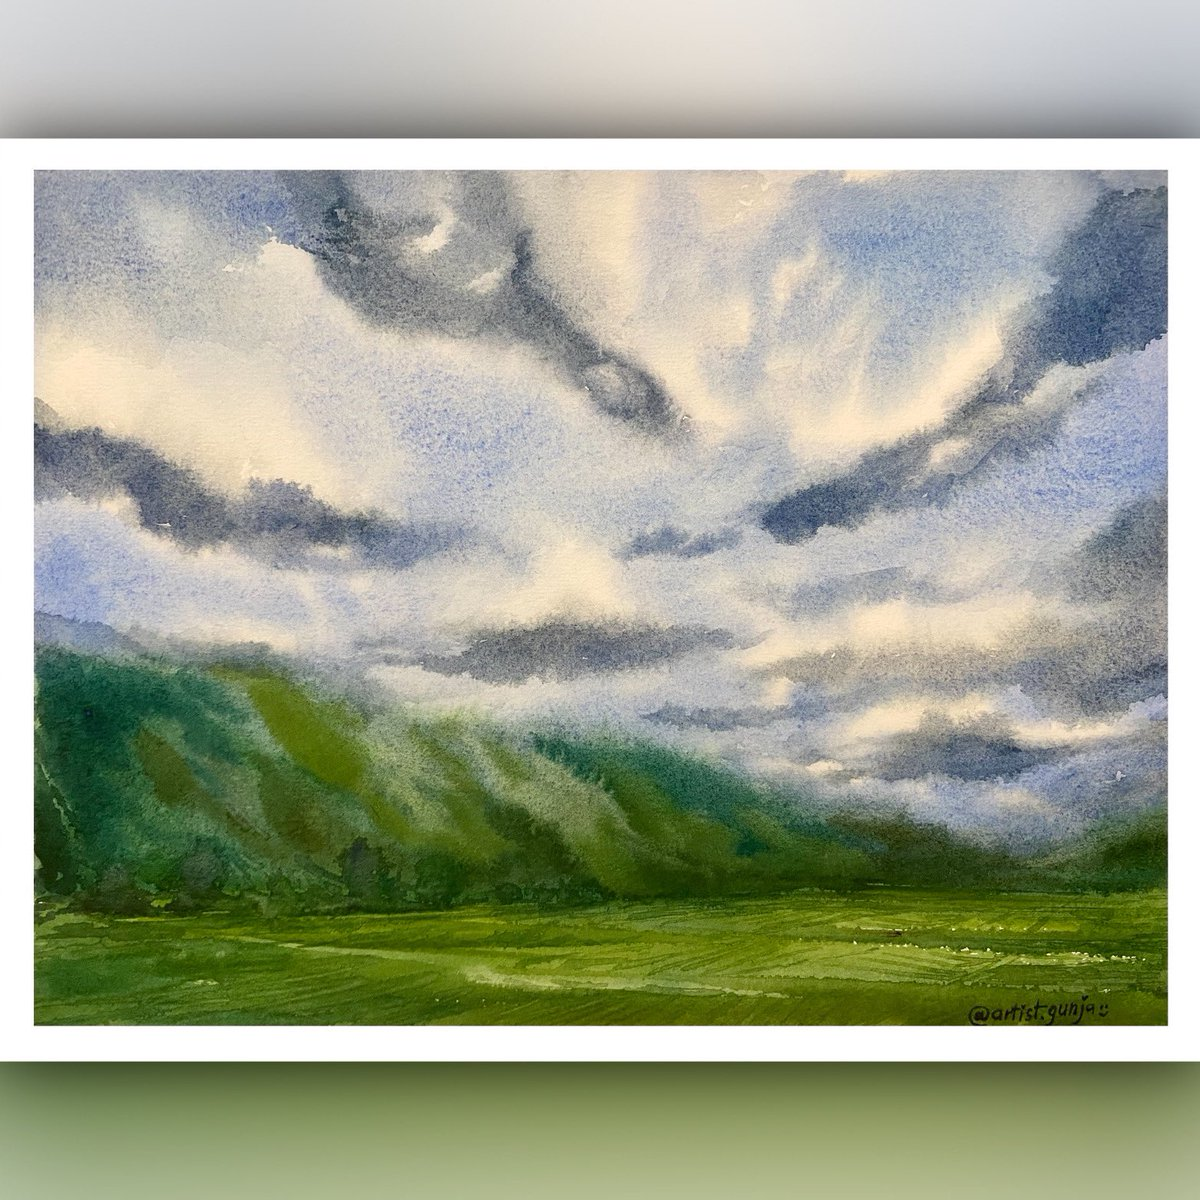 I so much wanted to #paint the #cloudy #day today, it's so #warm weather here 😎and I miss the #clouds 🤓 hope everyone is enjoying this #summer #weekend ...I used limited color pallet for this watercolor landscape, quite a good experience! 😊 checkout process video in thread... https://t.co/GxbxcErlfK